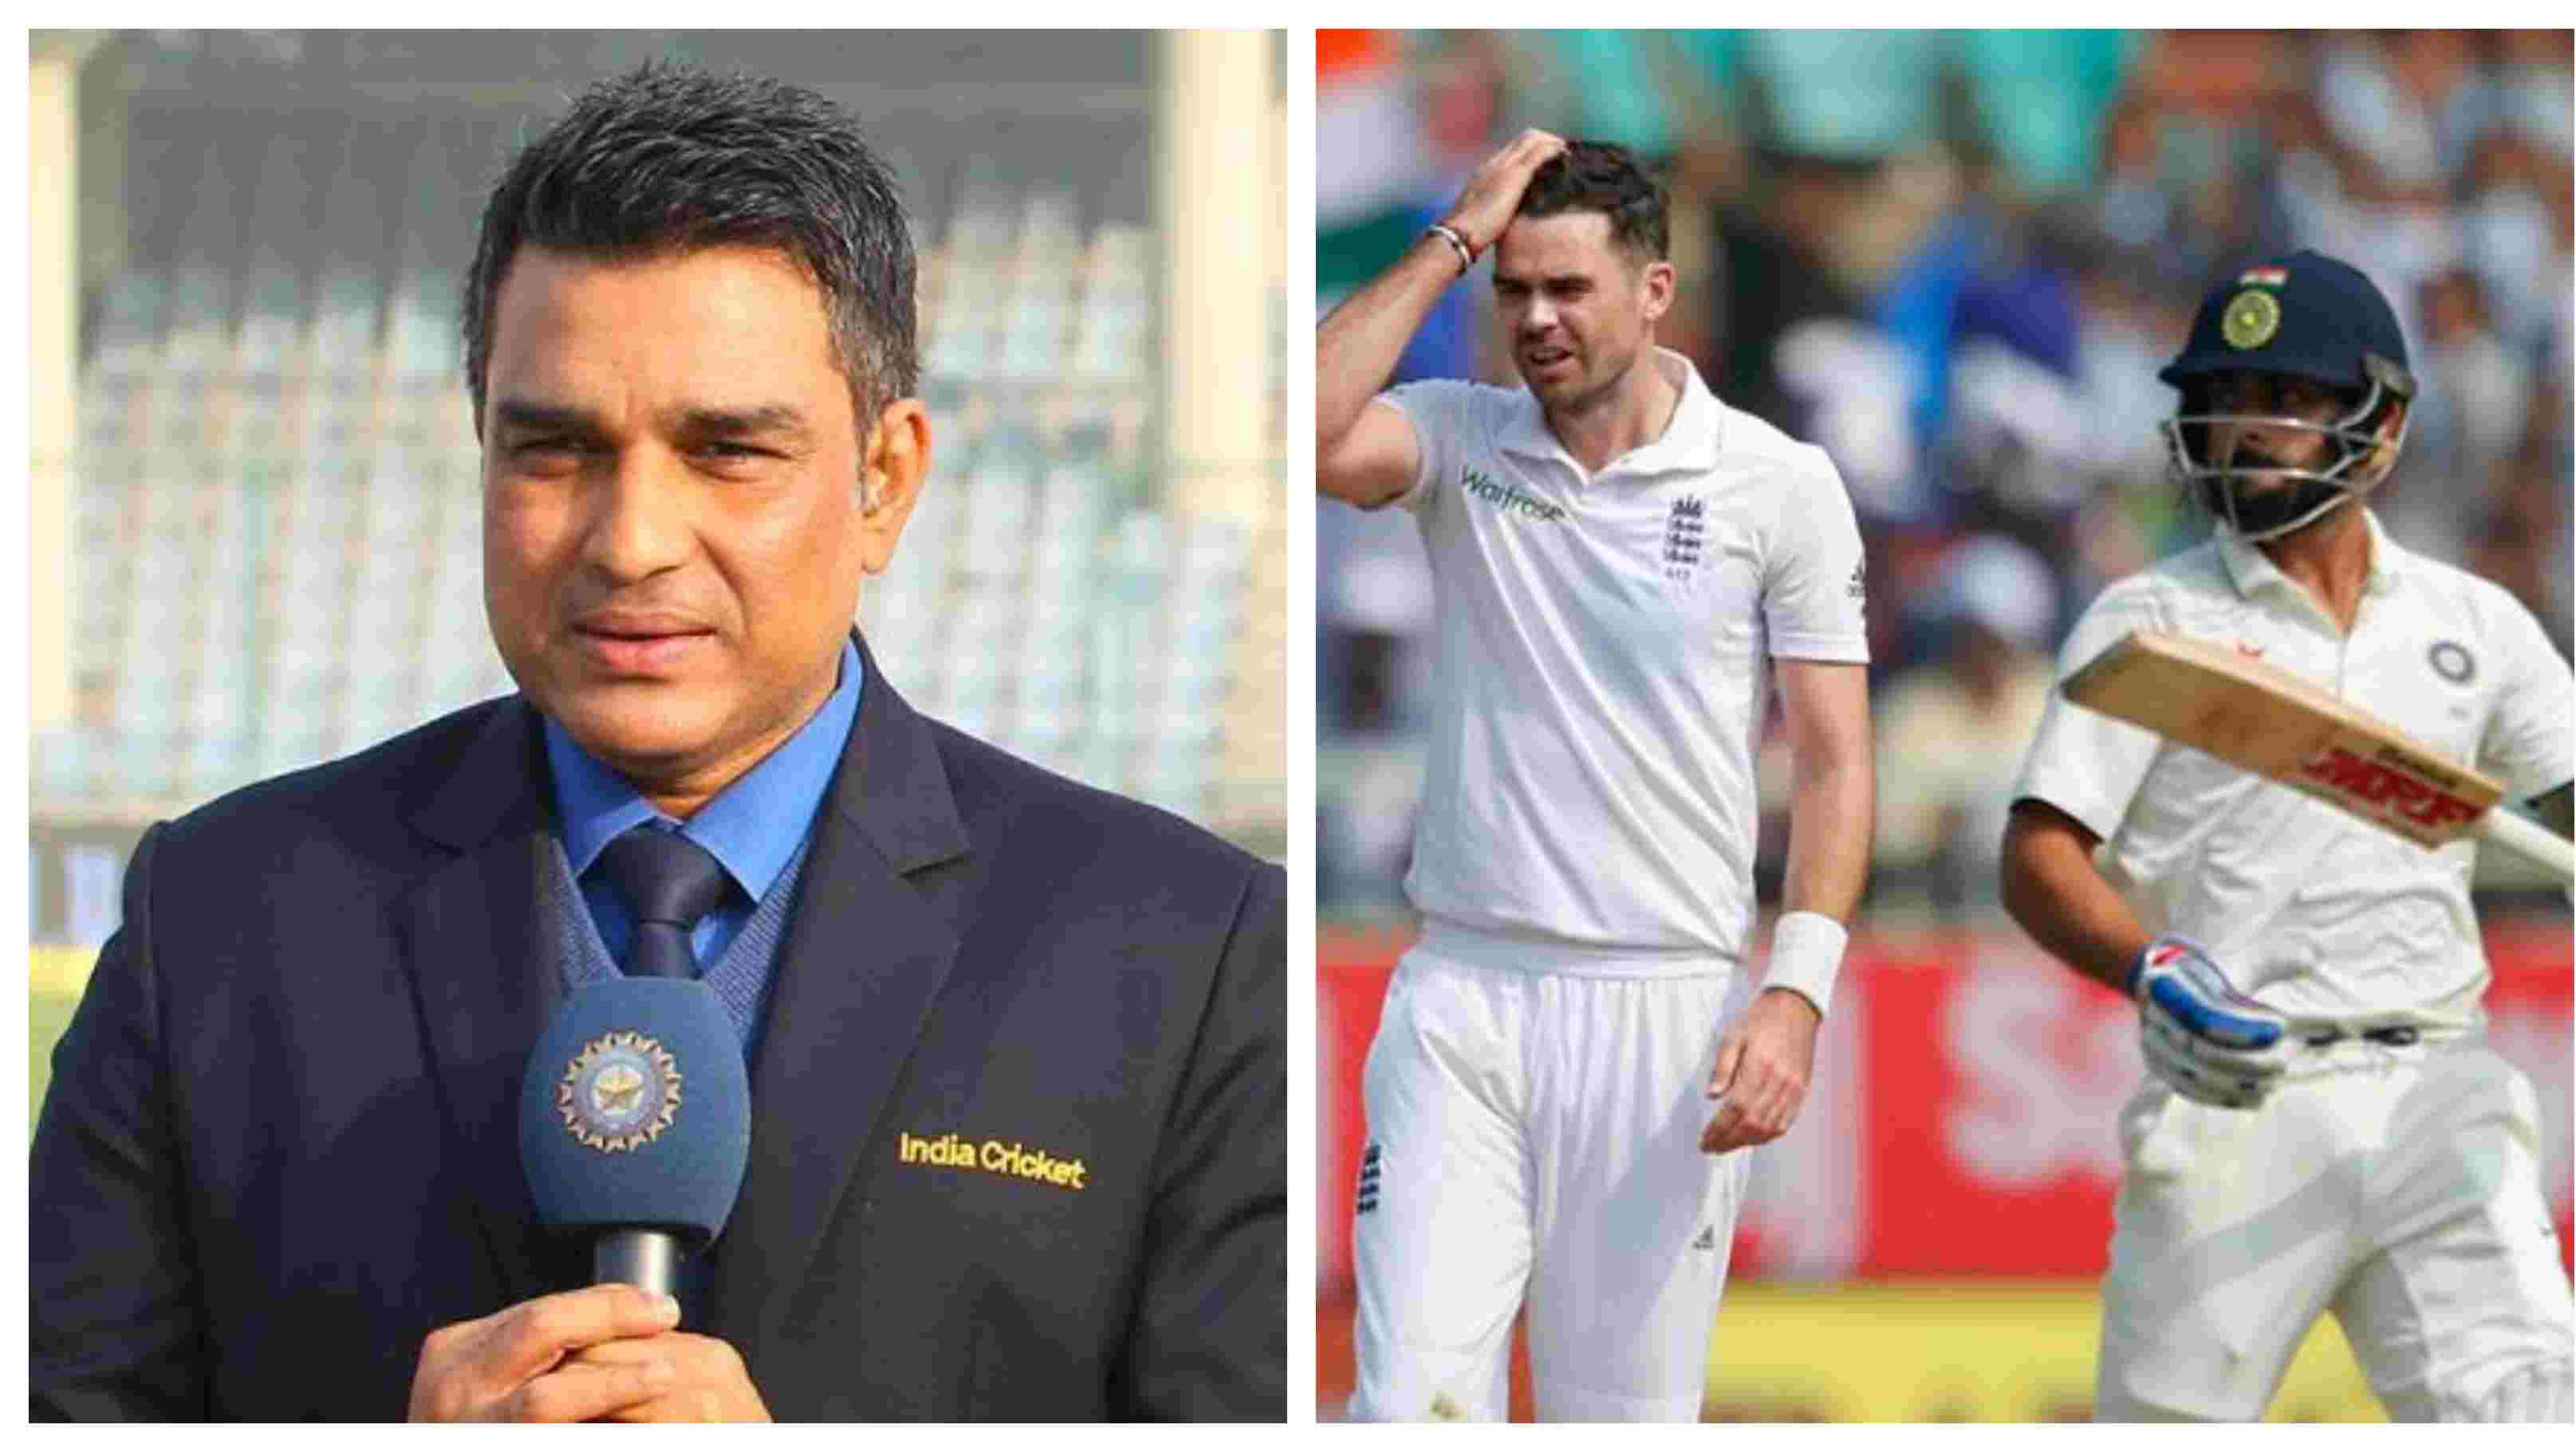 ENG v IND 2018: Sanjay Manjrekar gets roasted by Twitterati for advising Virat Kohli to tackle James Anderson